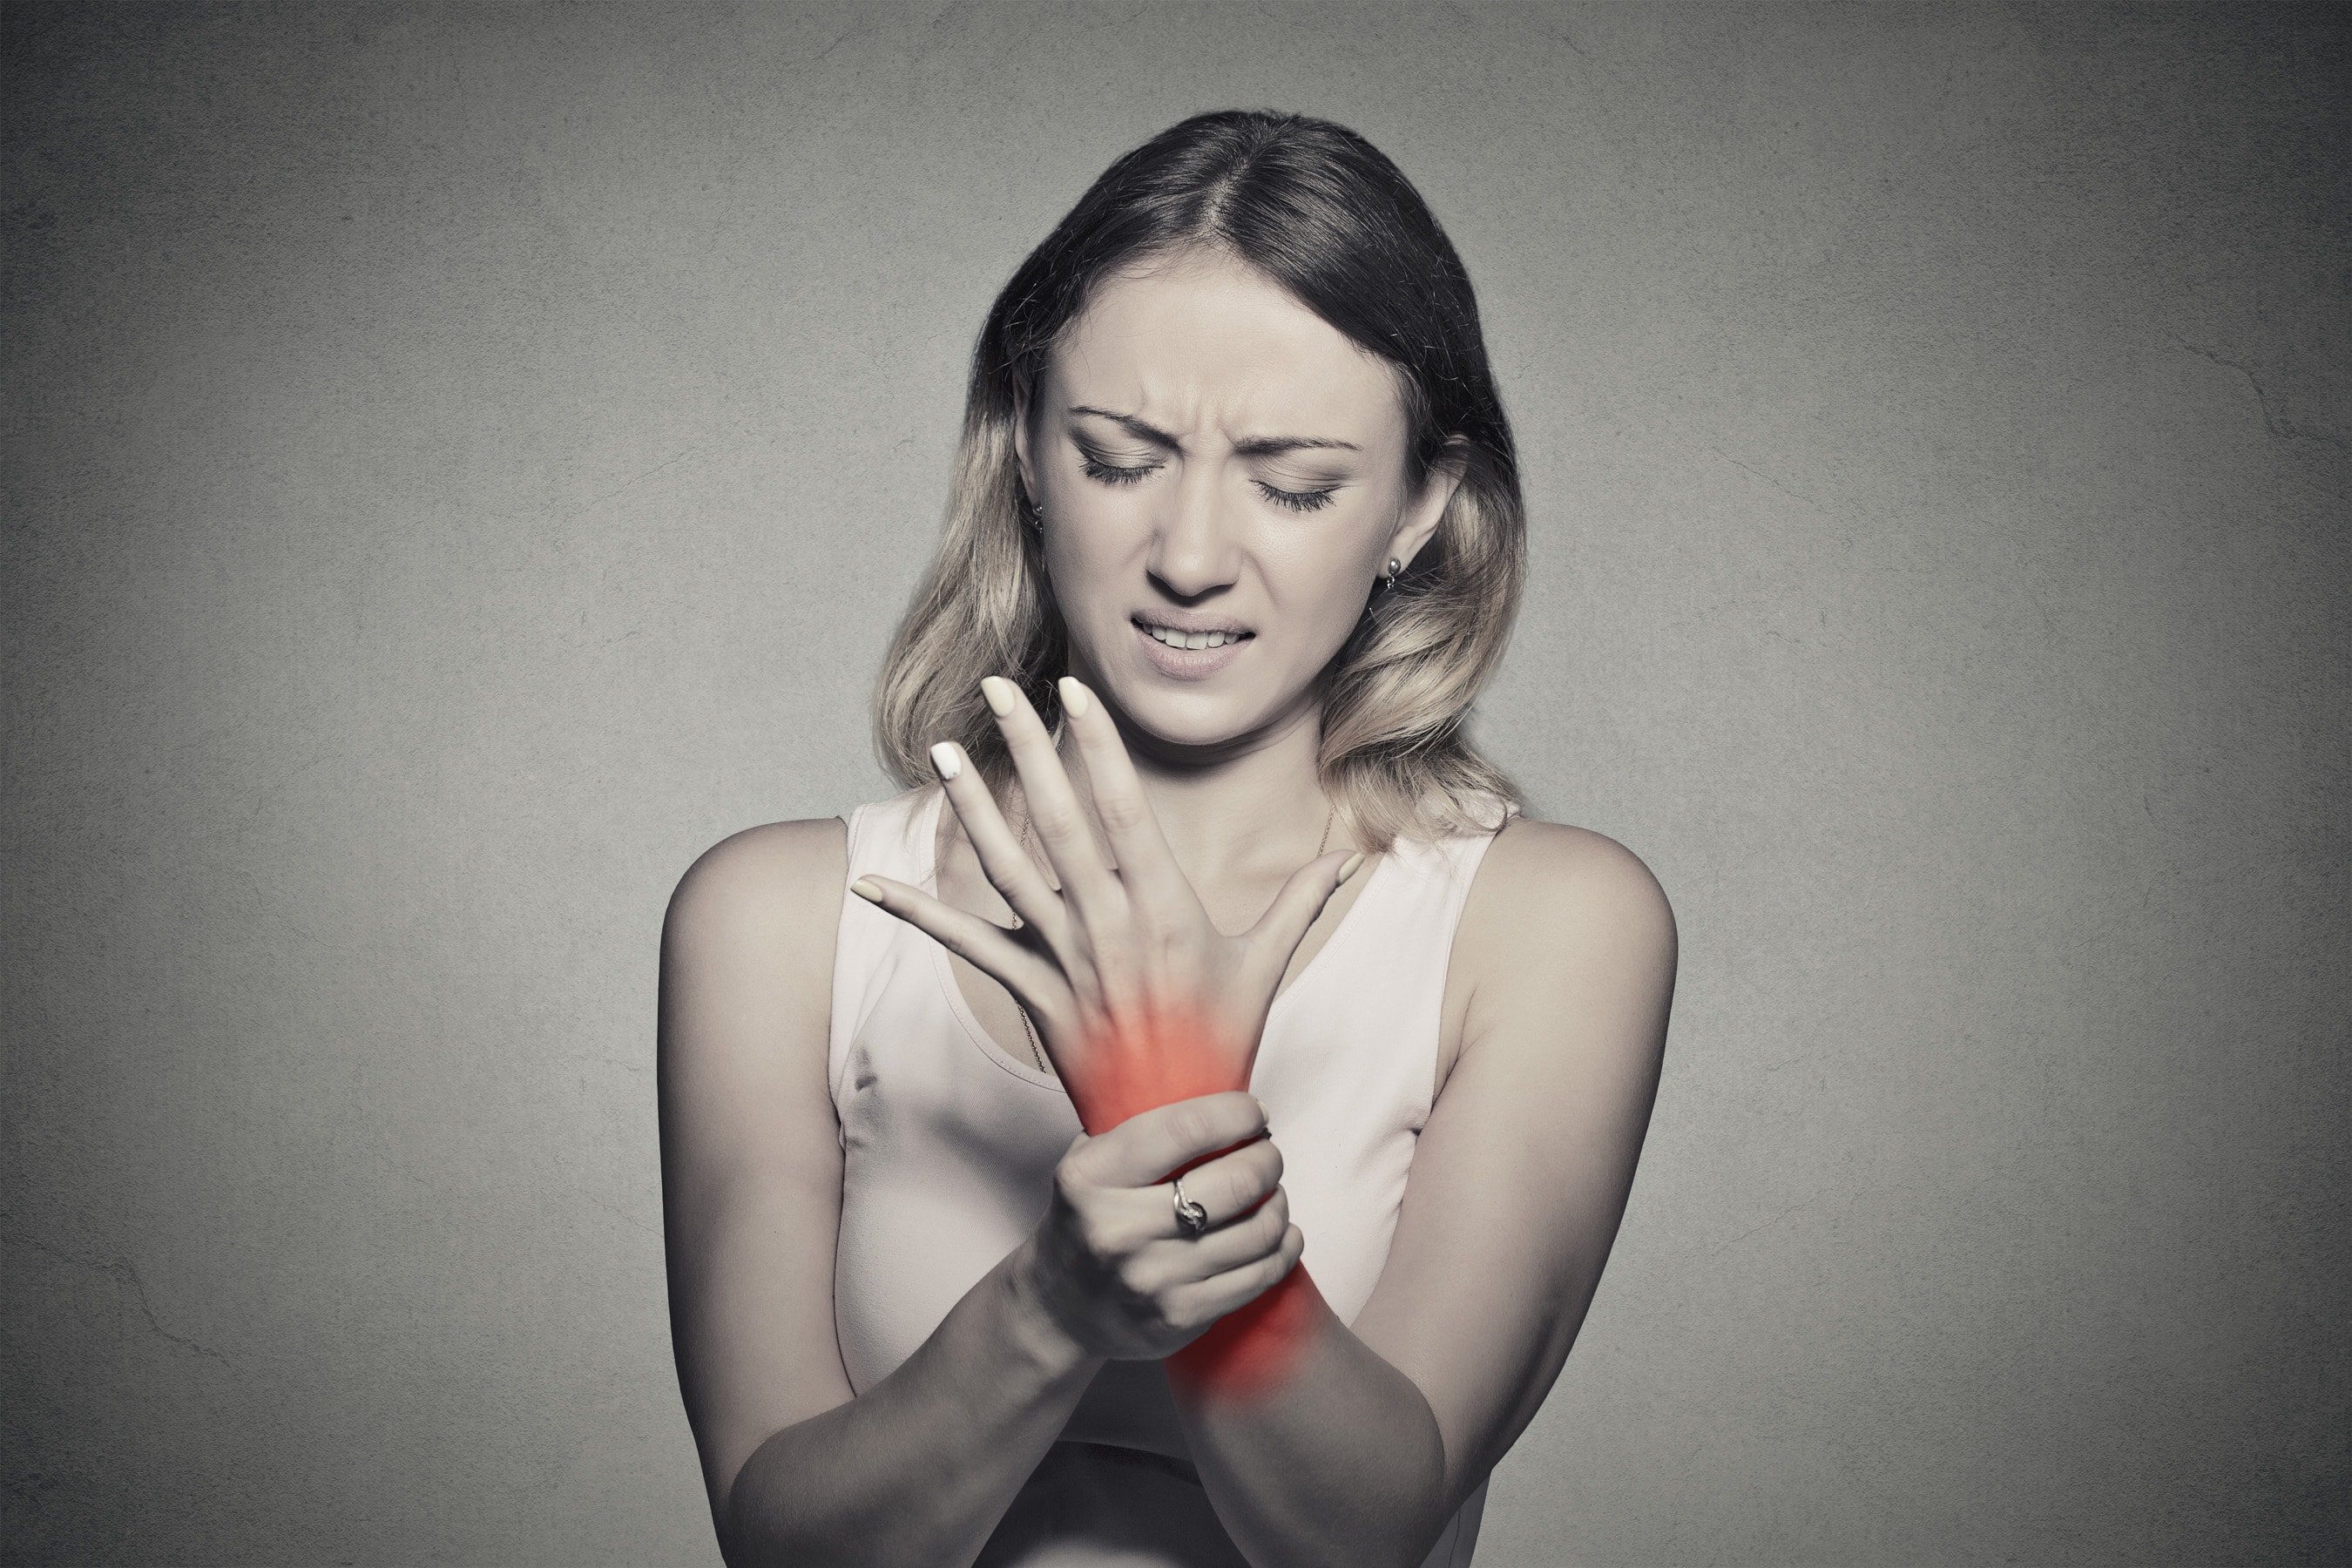 causes of wrist pain   wrist support for exercise   wags, Skeleton